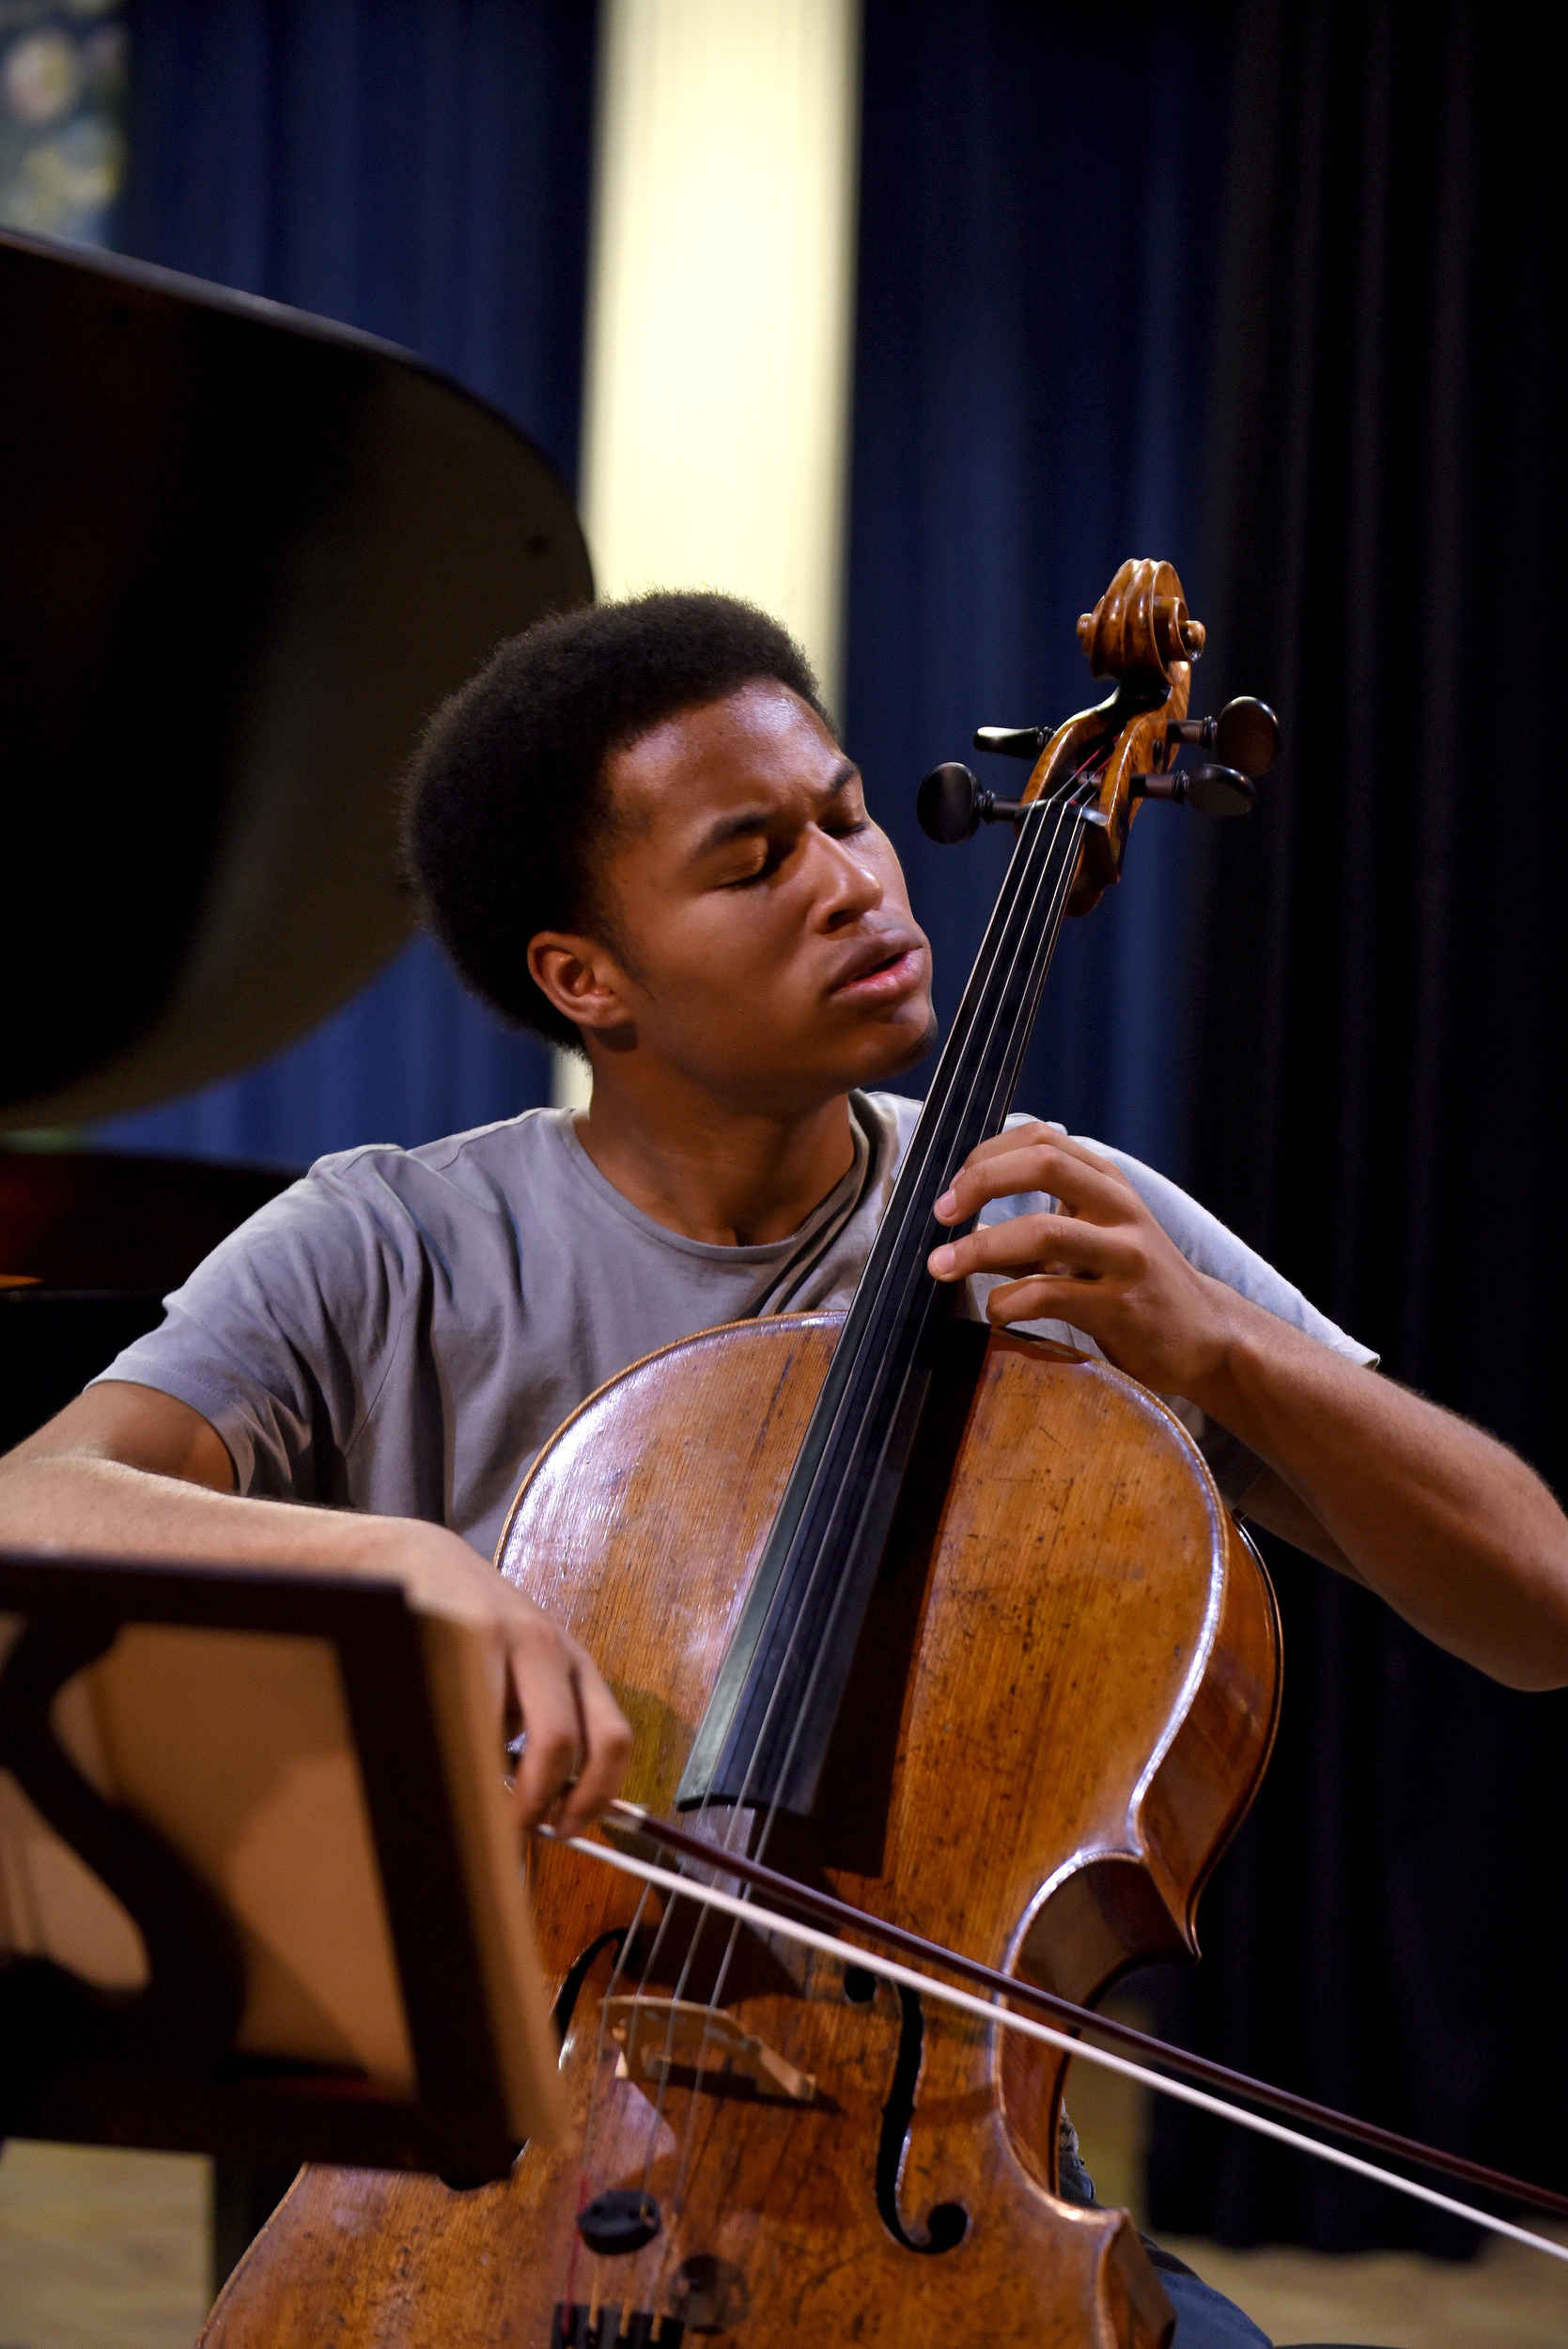 Sheku Mason, of the Kanneh-Mason trio, rehearsing before Saturday night's performance at the Erin Arts Centre